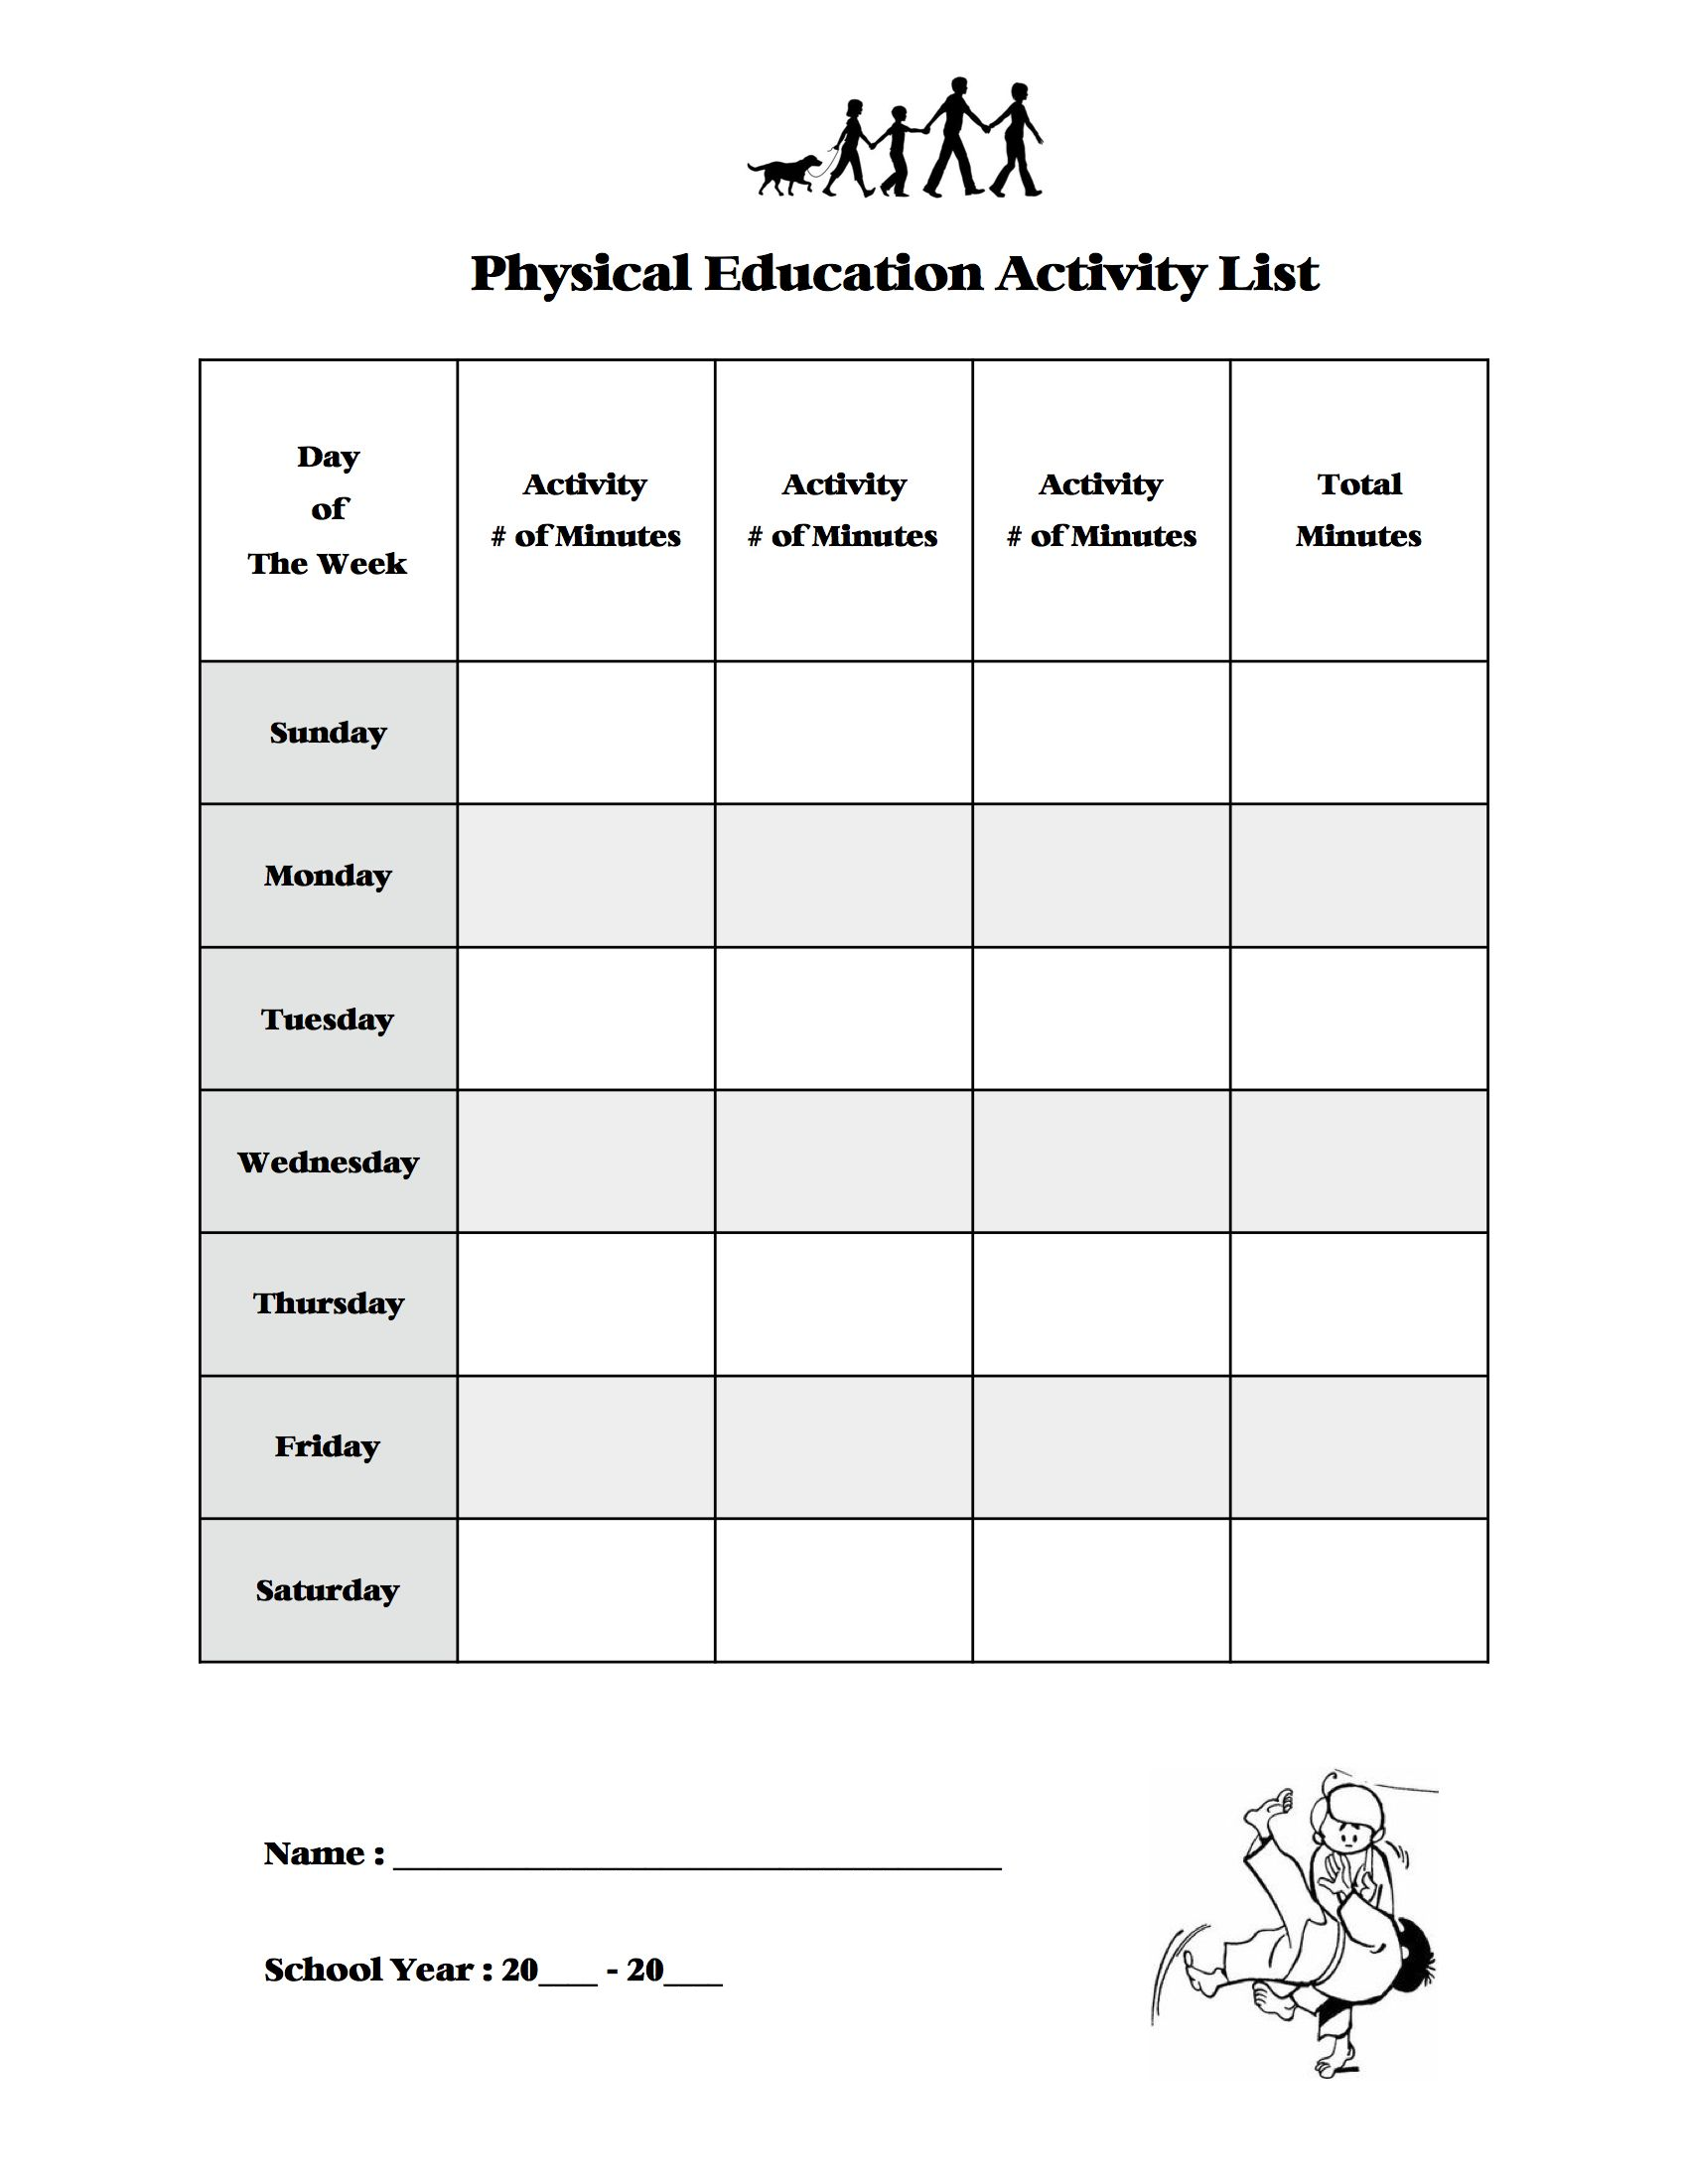 My Own Physical Education Chart I Came Up With To Track As